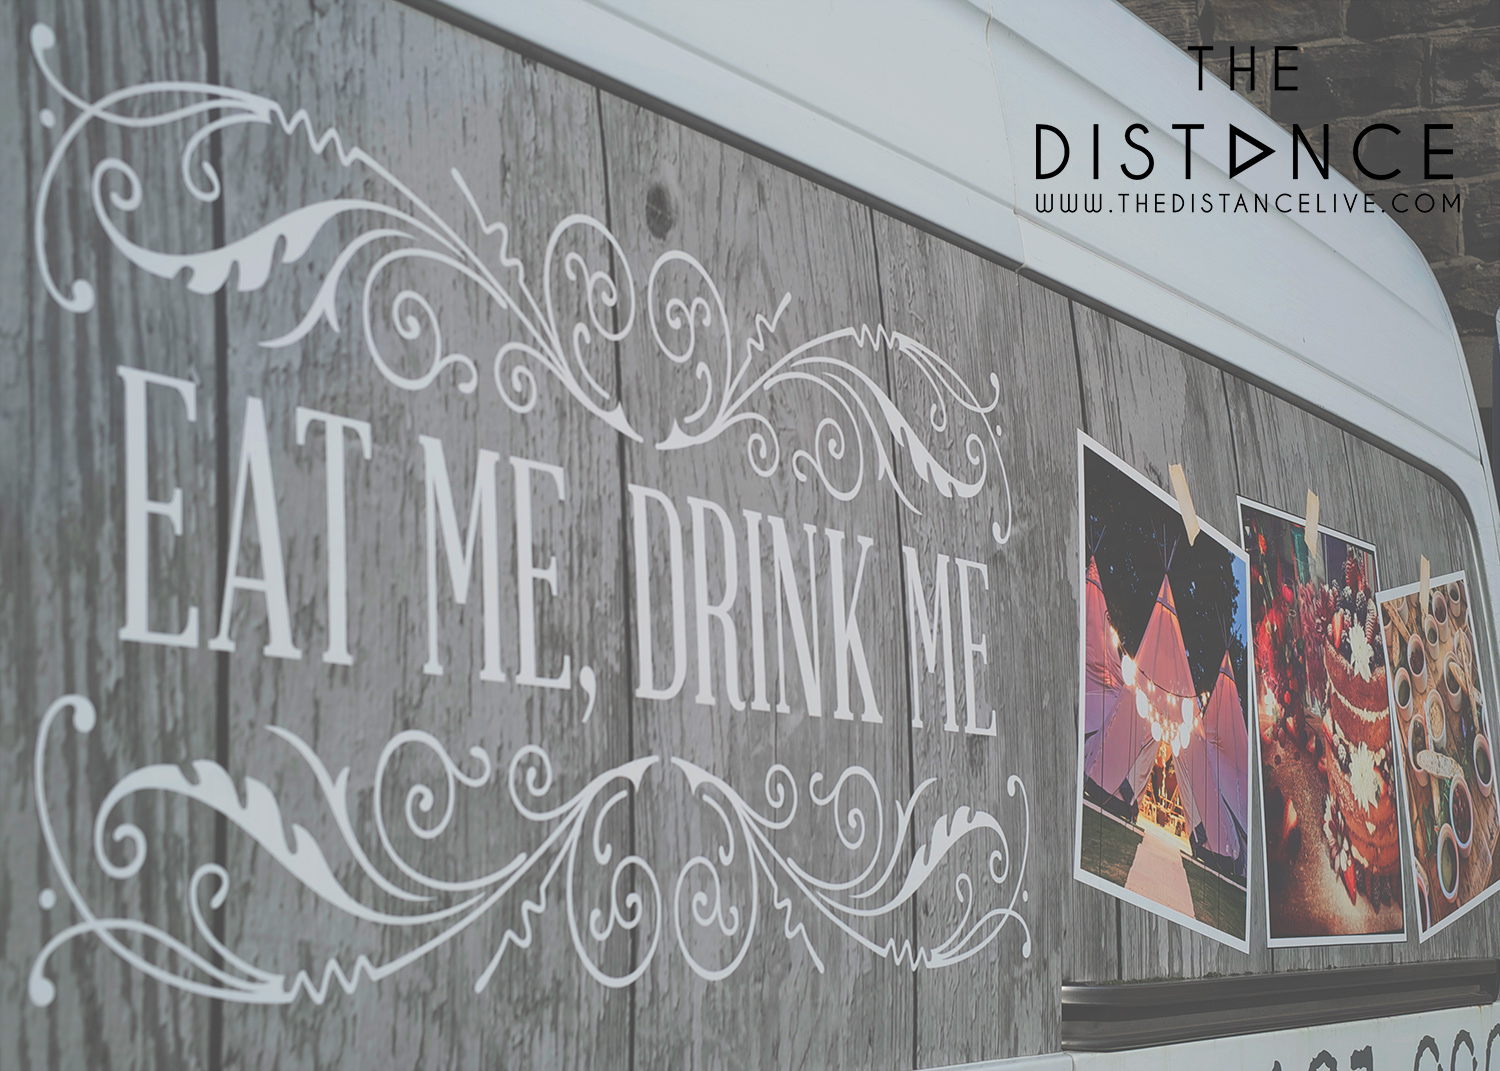 Eat me, drink me wedding band the distance